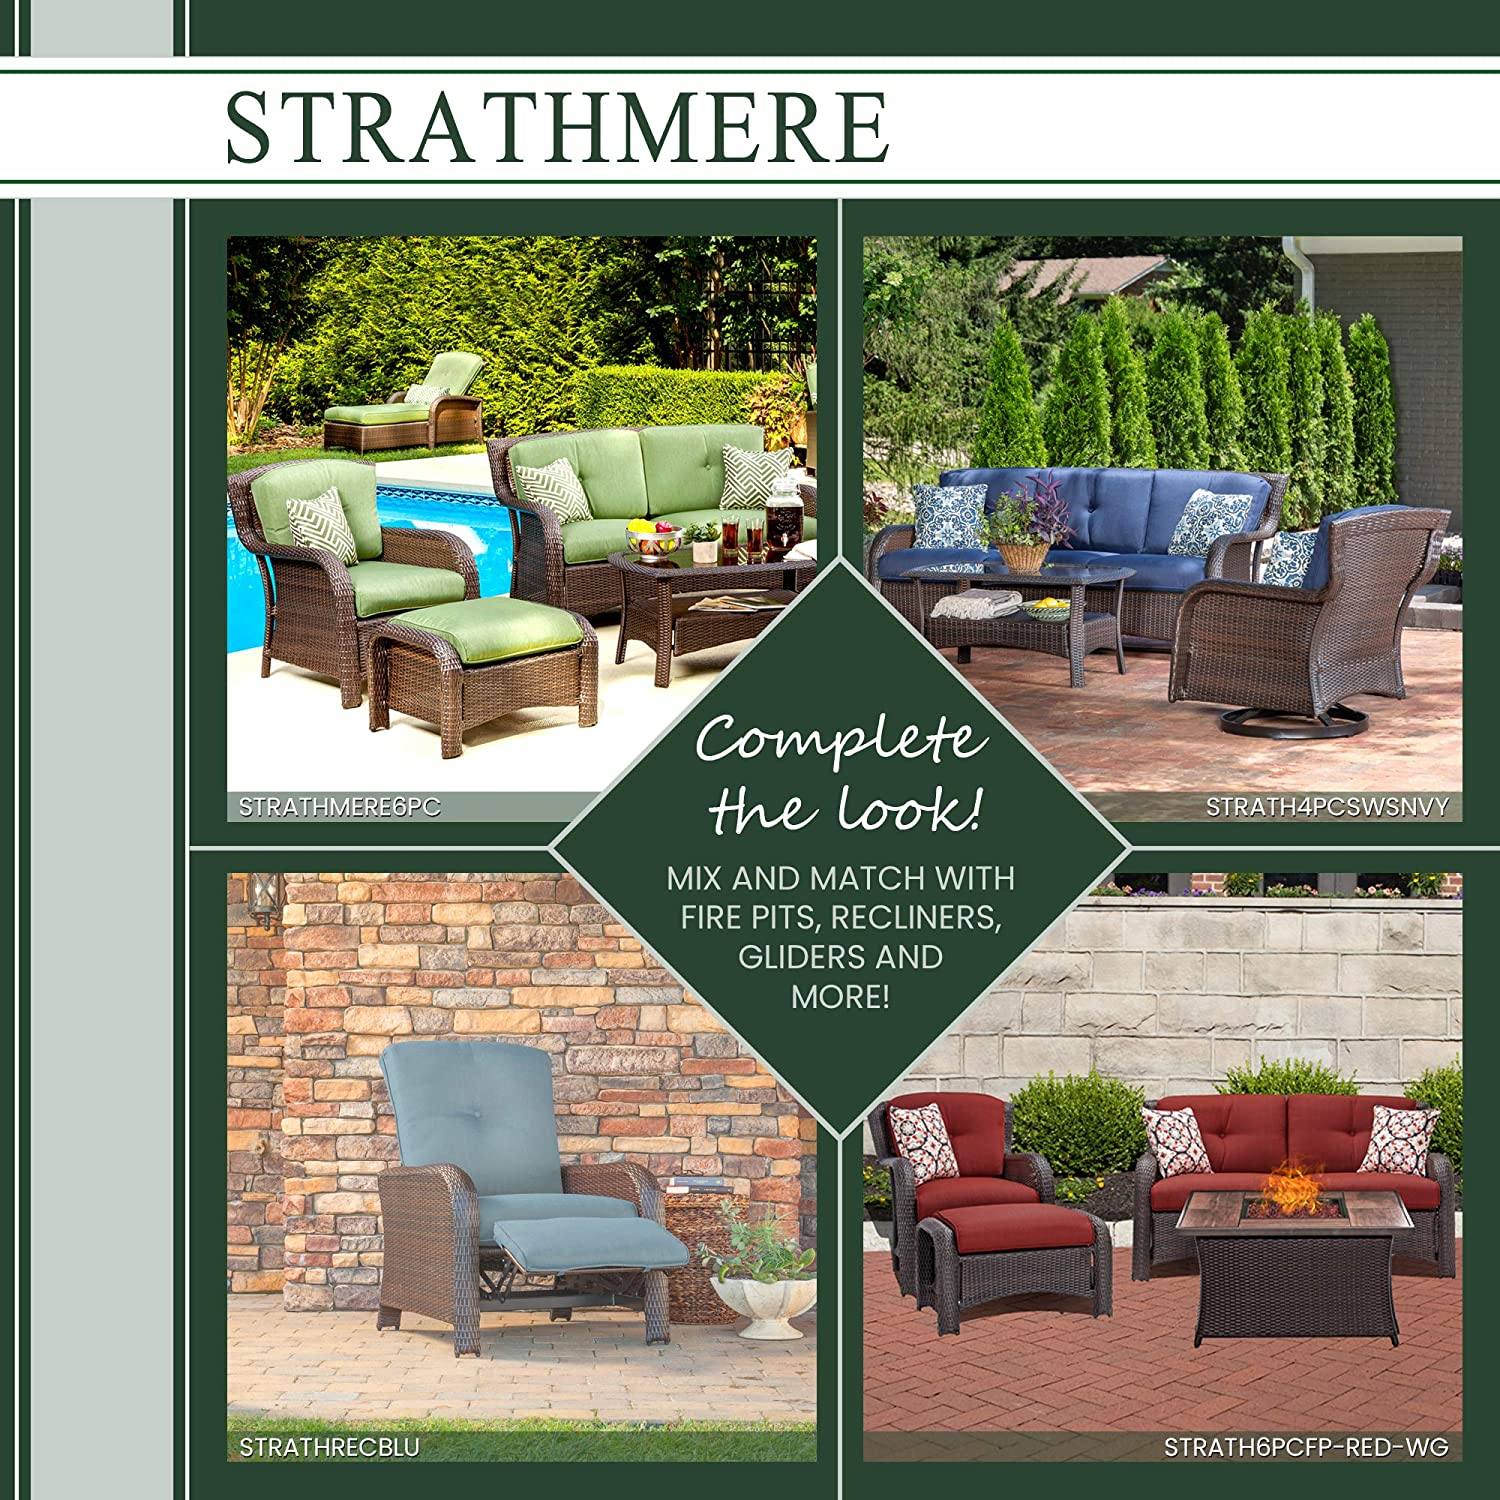 Hanover Strathmere 6-Piece Outdoor Patio Conversation Set, 2 Side Chairs with Ottomans, Loveseat and Tempered Glass Coffee Table, with Hand-Woven Wicker and Thick Cilantro Green Cushions, STRATHMERE6PC : Patio Loveseats : Garden & Outdoor